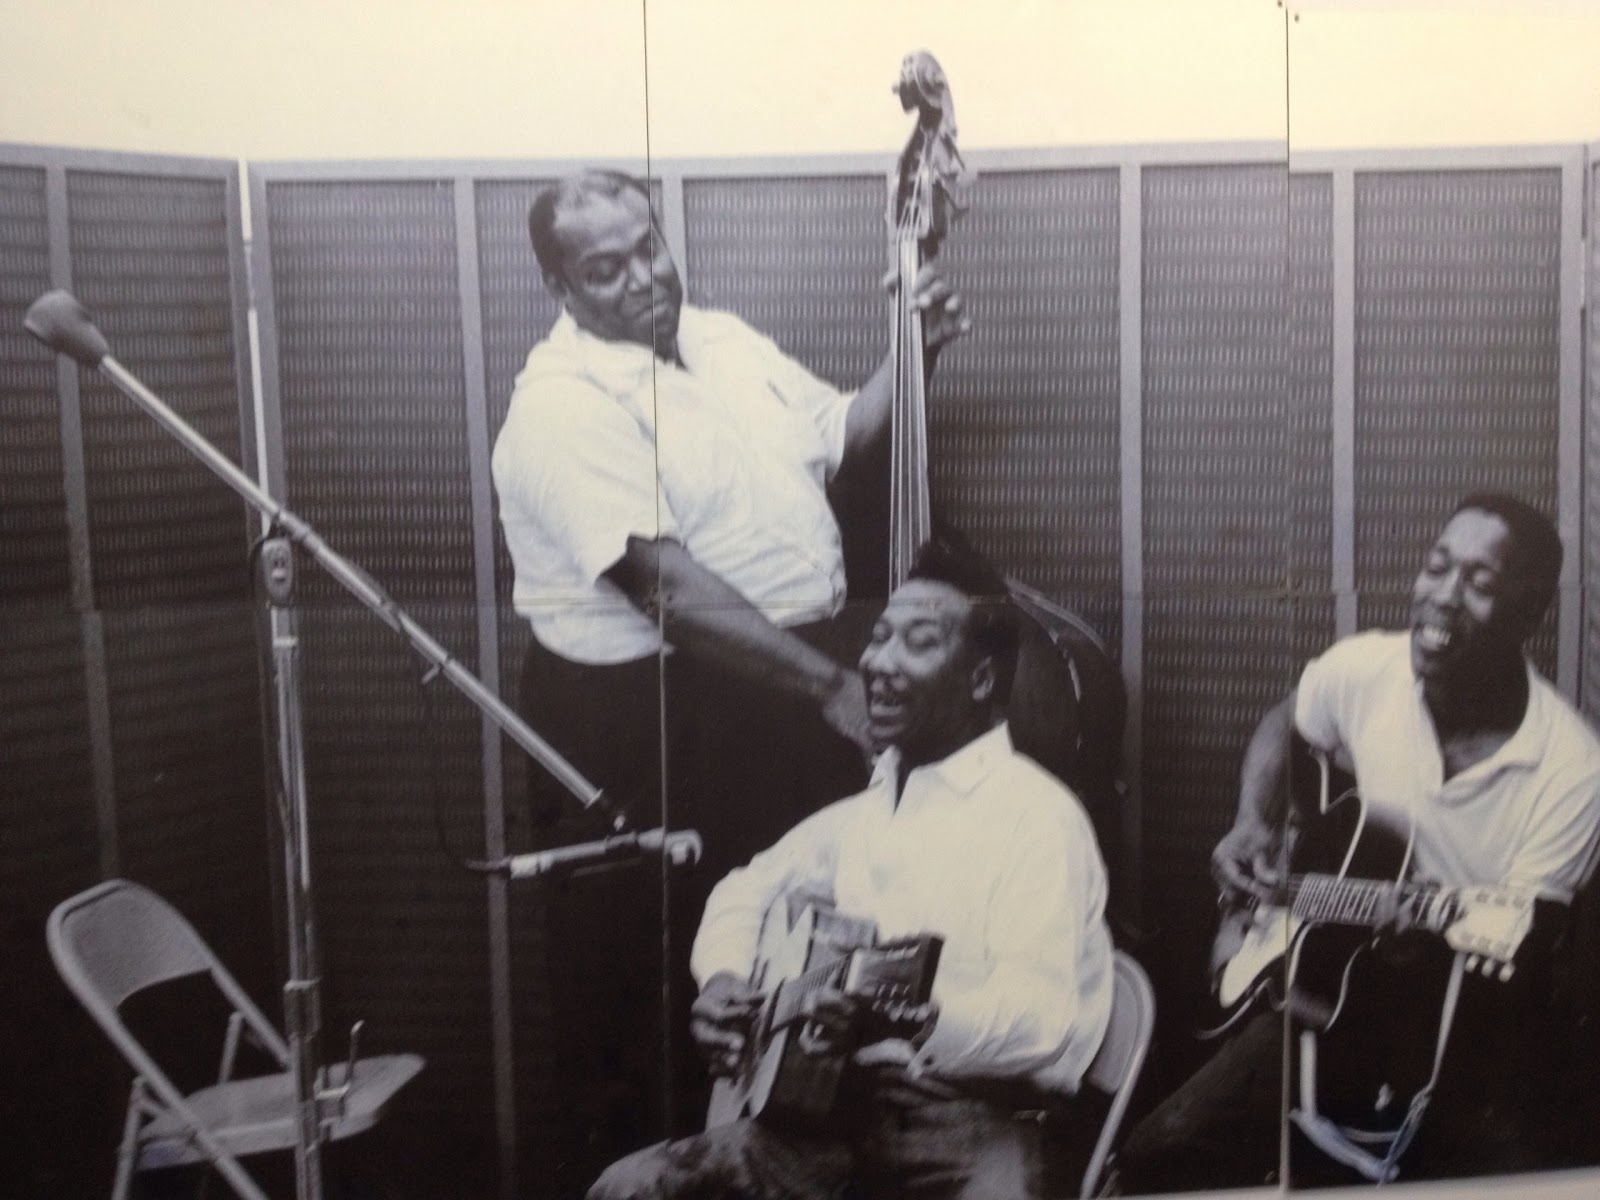 Muddy Waters center, Junior Wells left, Willie Dixon standing